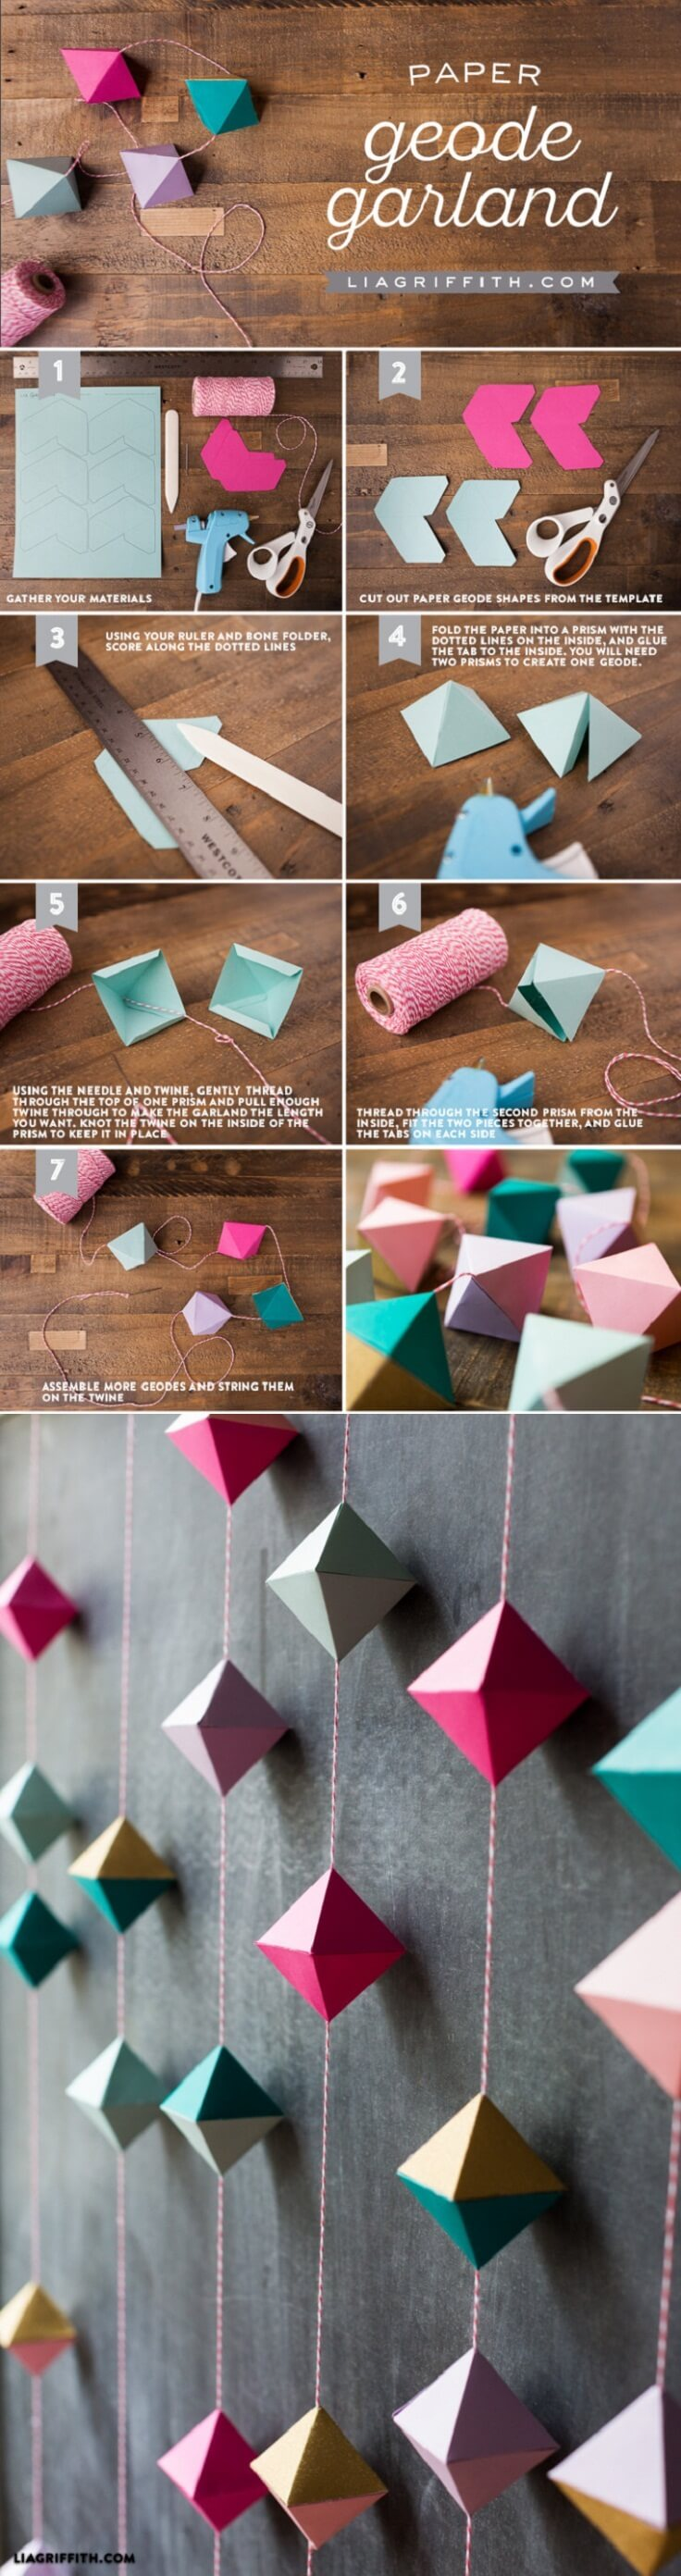 paper decor crafts ideas 8